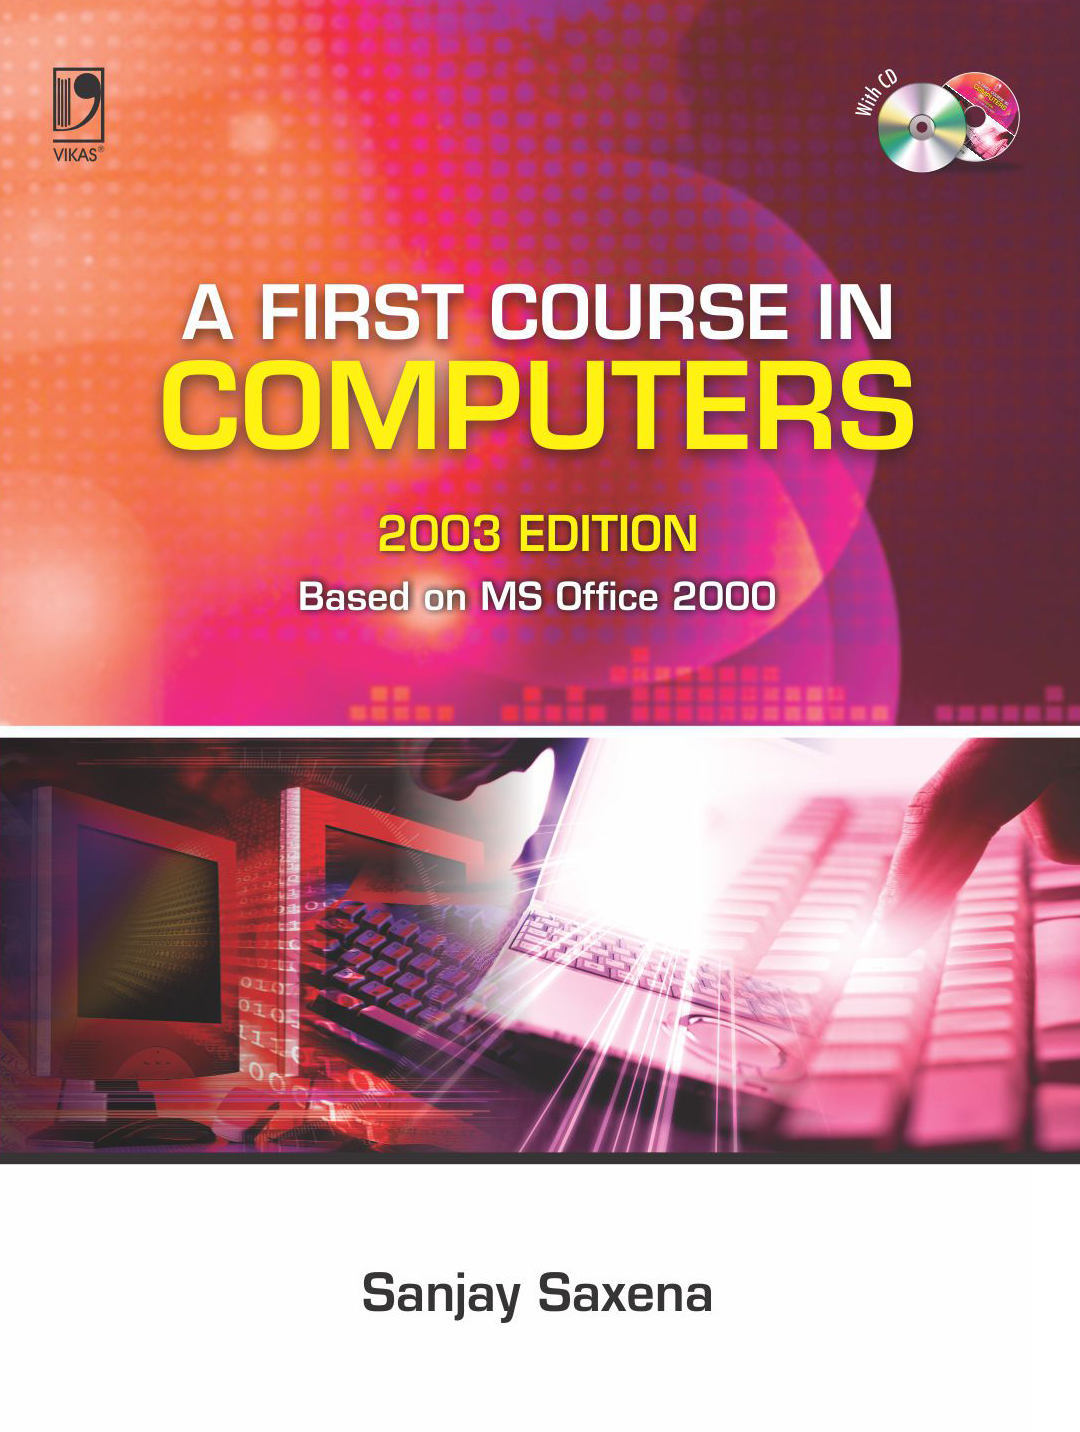 A First Course in Computers 2003 Edition (With CD), 3/e